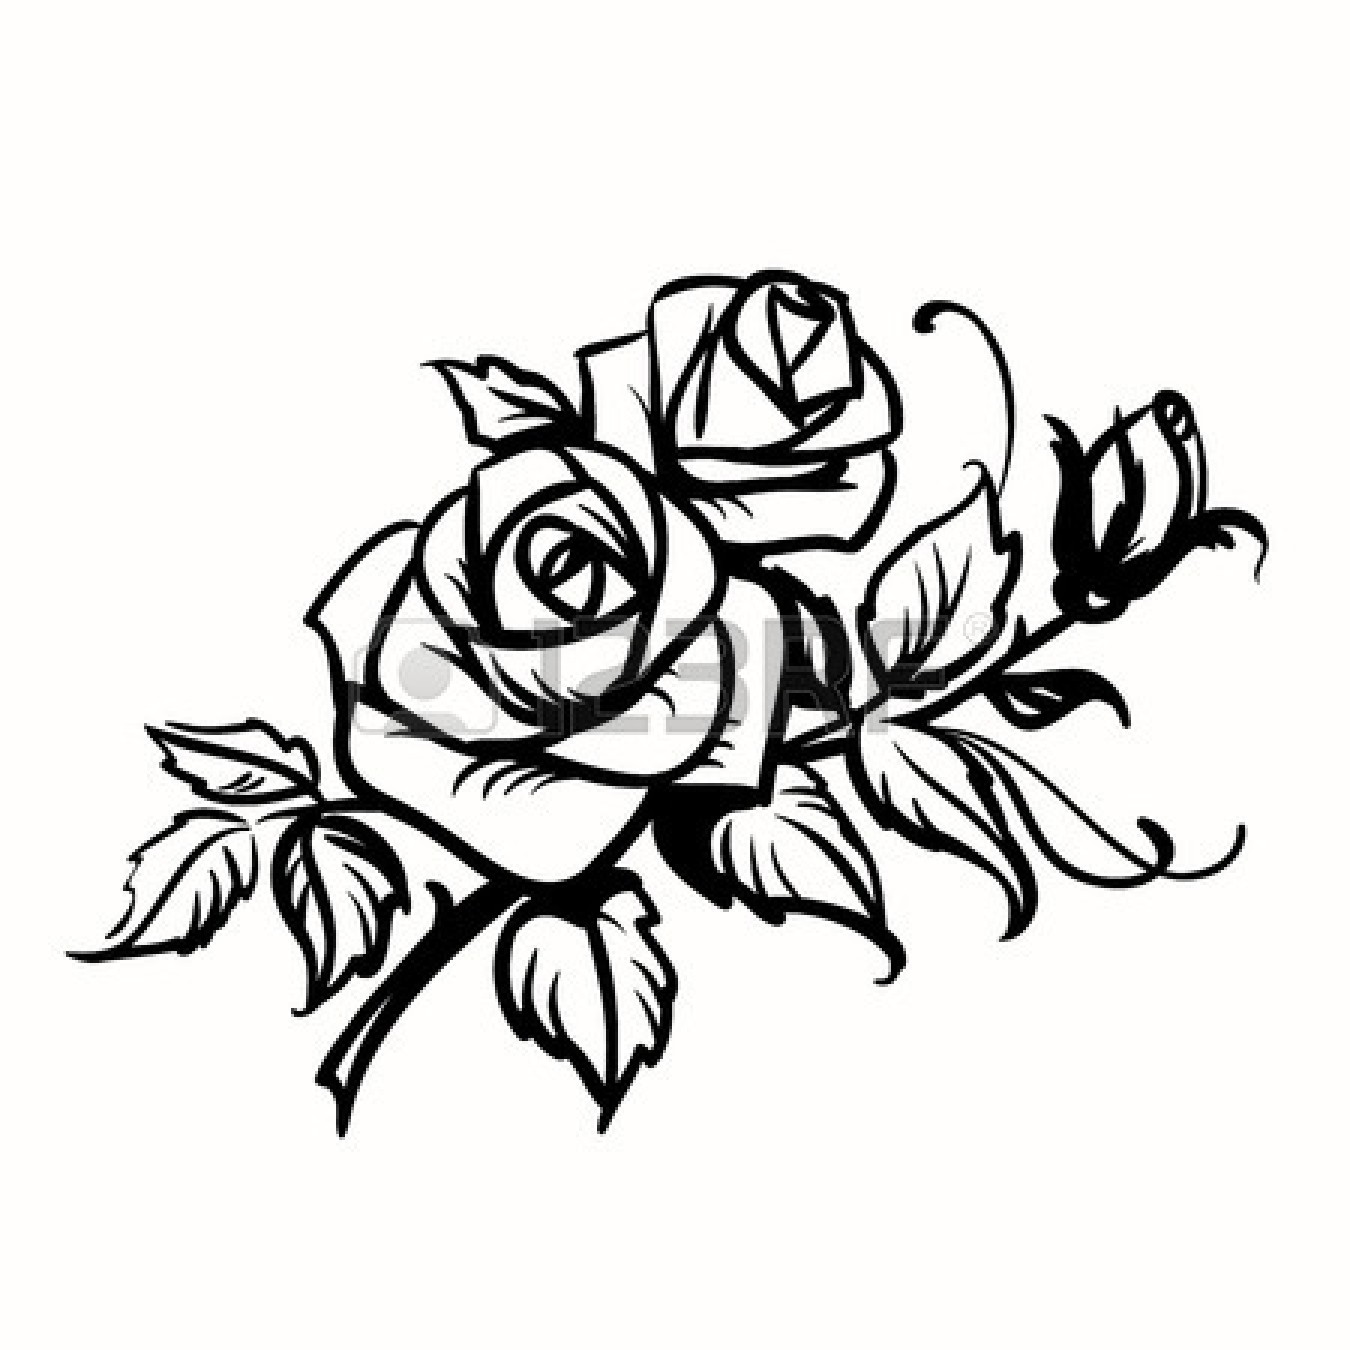 Flower outline clipart clipart panda pictures alice in wonderland drawing outlines roses clipart panda free clipart images download drawing outlines roses 40778523 flower outline clipart clipart panda mightylinksfo